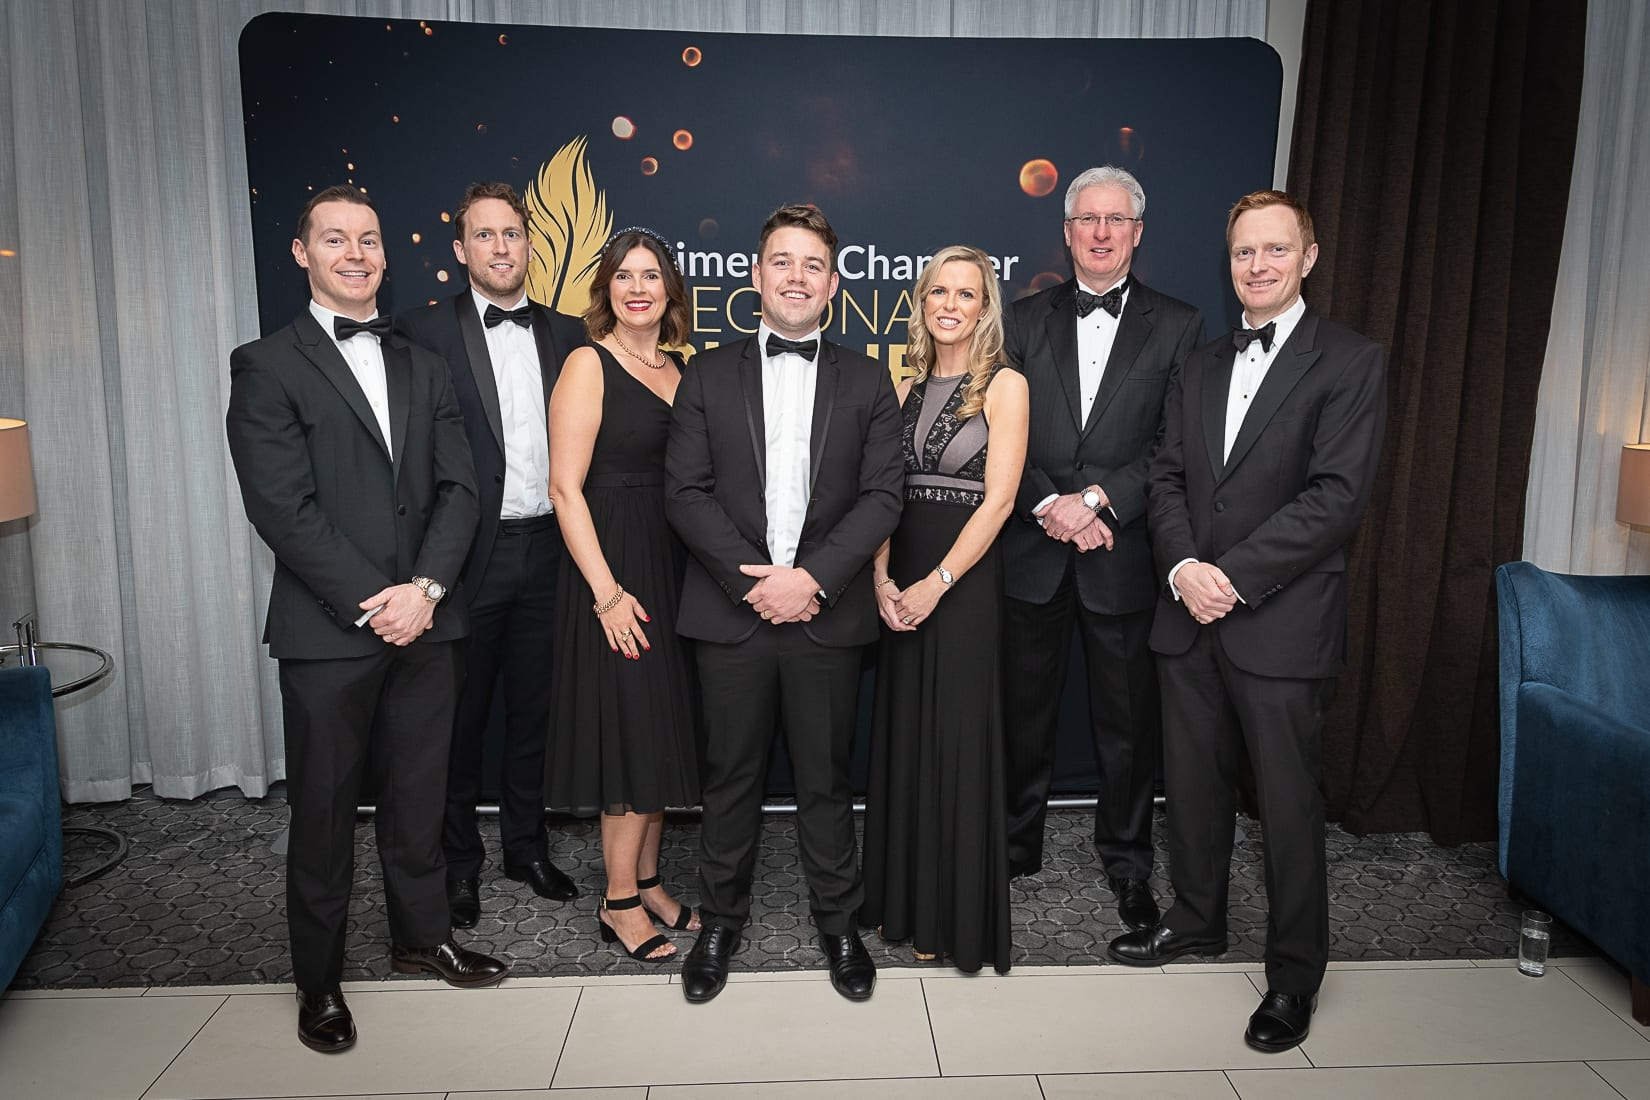 and Limerick Chamber Regional Business Awards 2019 which was held in the Strand Hotel on Friday 15th November / HOMS Sponsors/  - From Left to Right: Sean Fitzgerald, Neil O'Gorman, Lisa Killeen, Shane Costello, Sandra Egan, Donal Creaton, George Kennedy all from HOMS Photo credit Shauna Kennedy